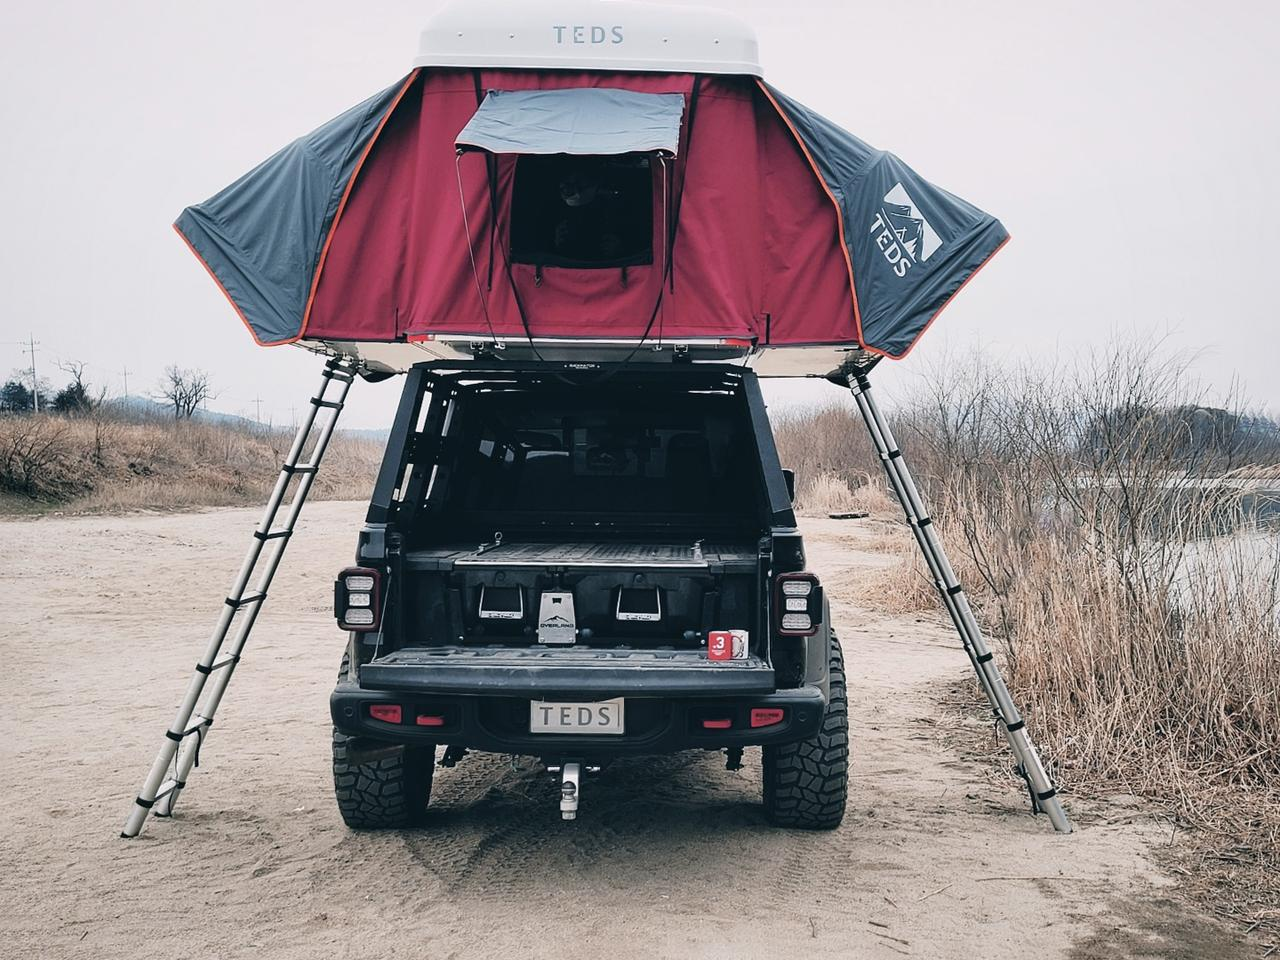 With its dual-expansion design, the TEDpop remains centered over the vehicle with two separate entryways